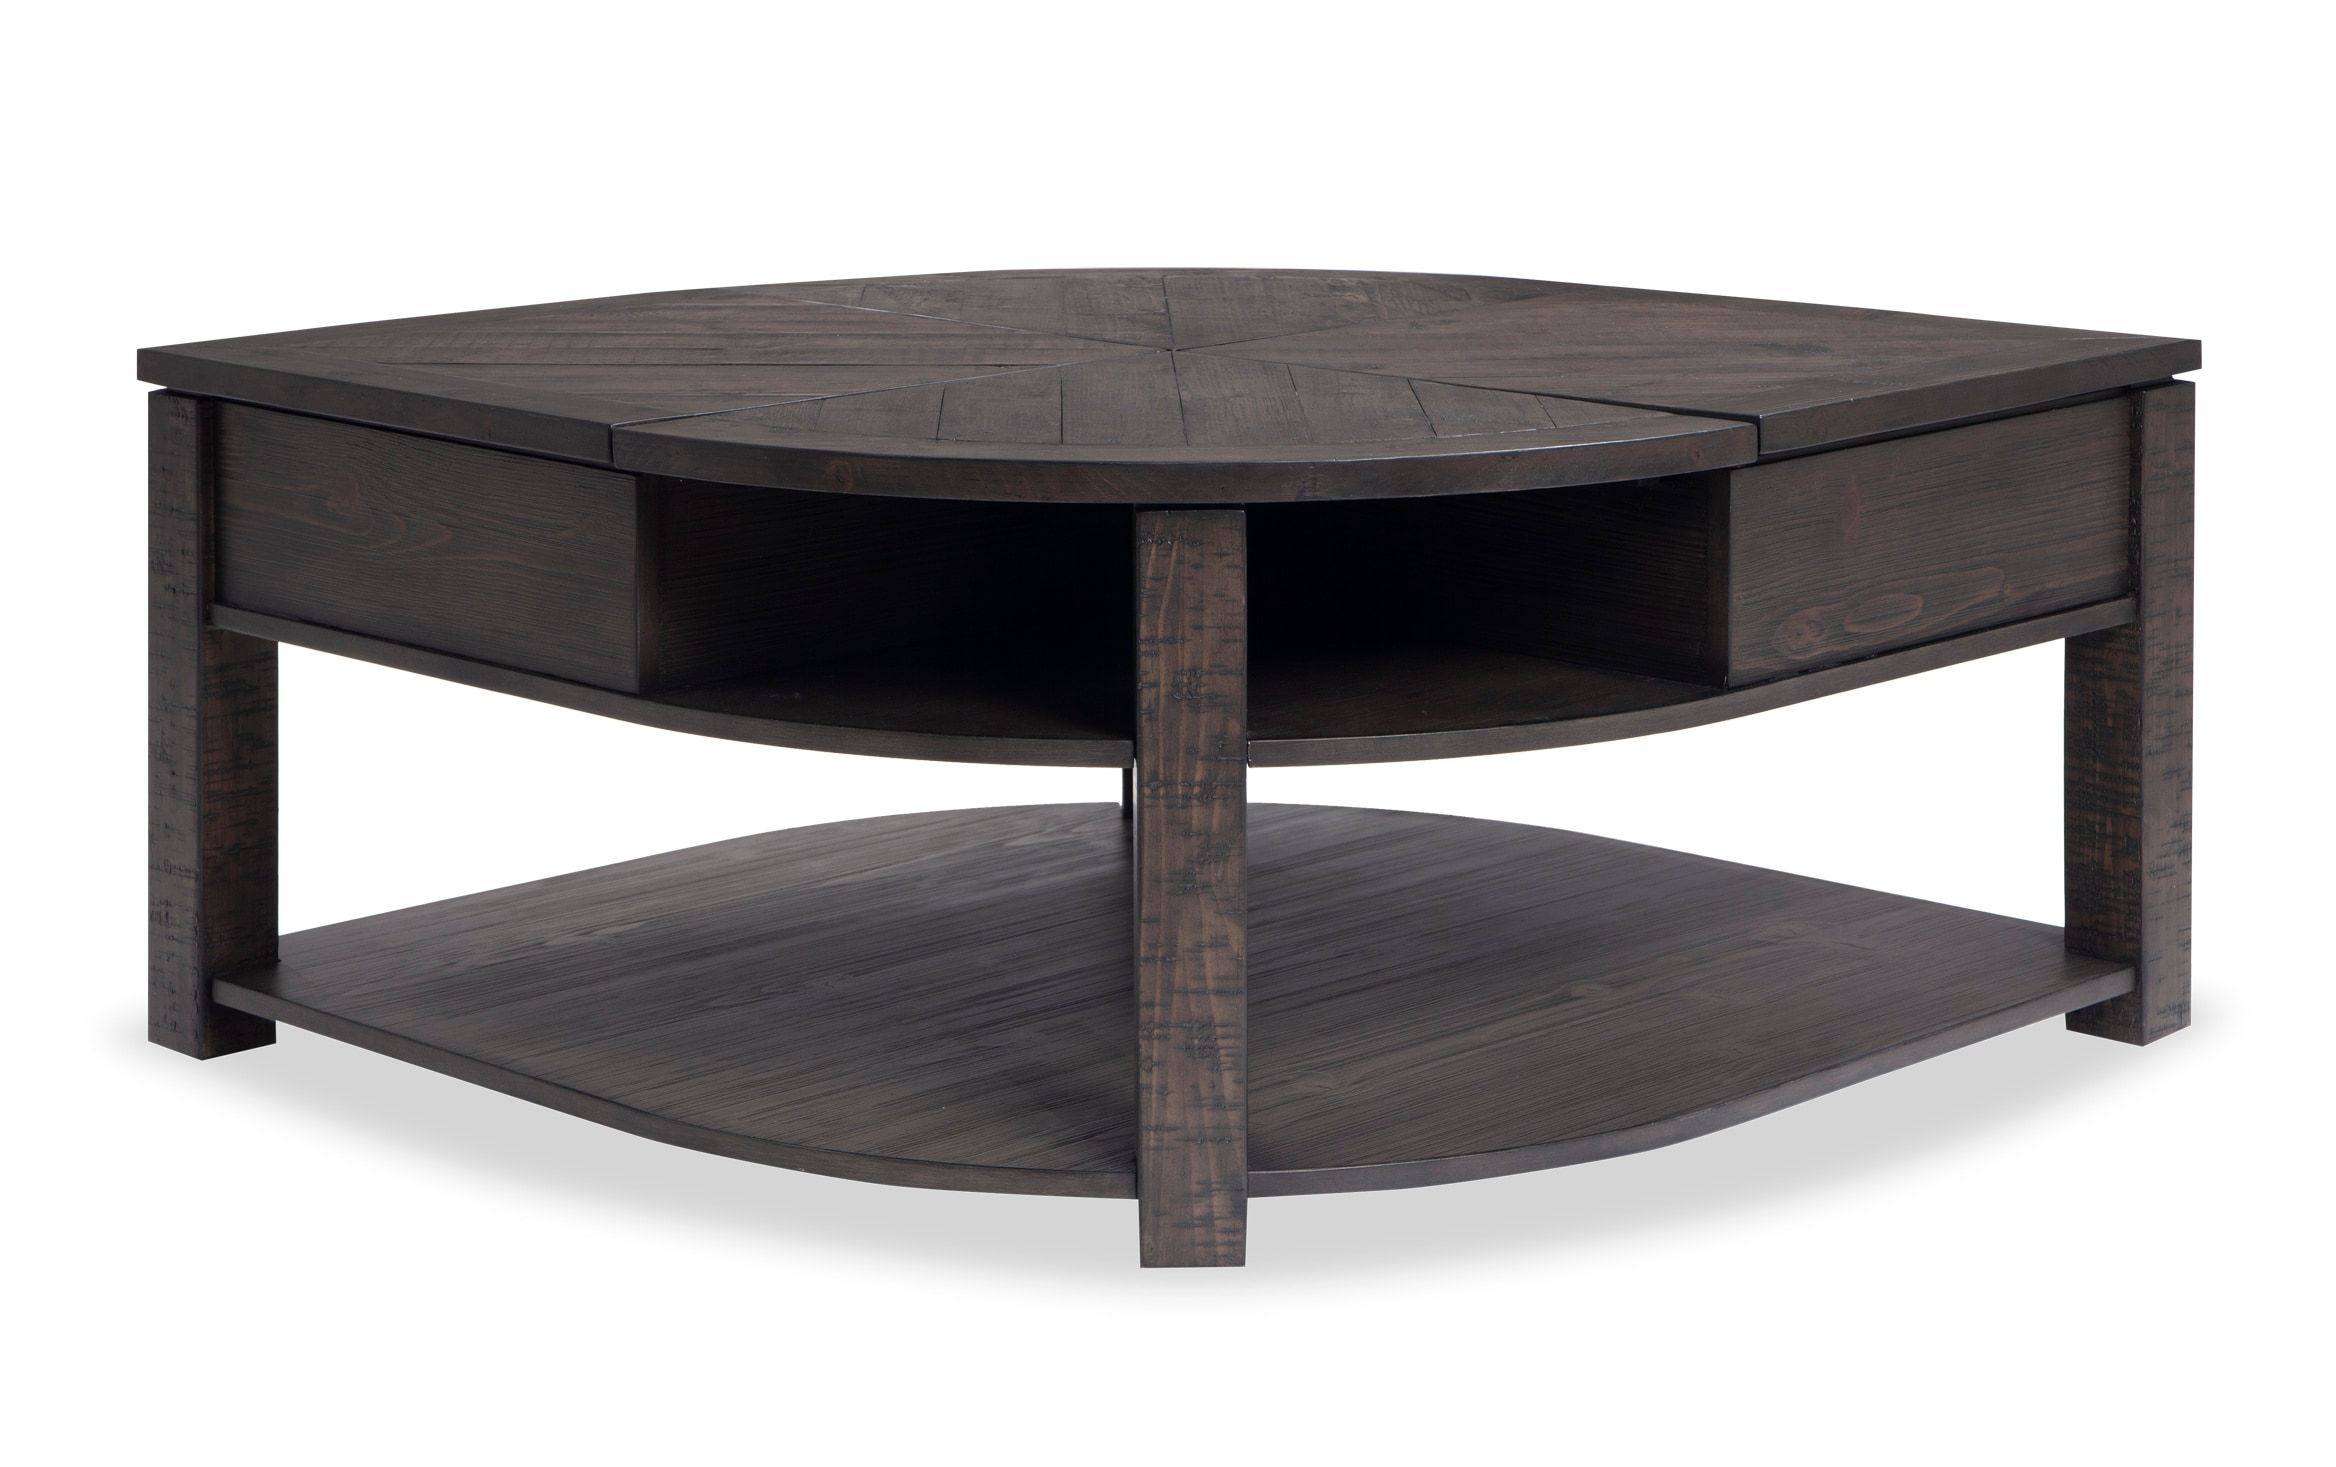 Extreme Lift Top Wedge Coffee Table Coffee Table Round Coffee Table Living Room Round Wood Coffee Table [ 1467 x 2336 Pixel ]